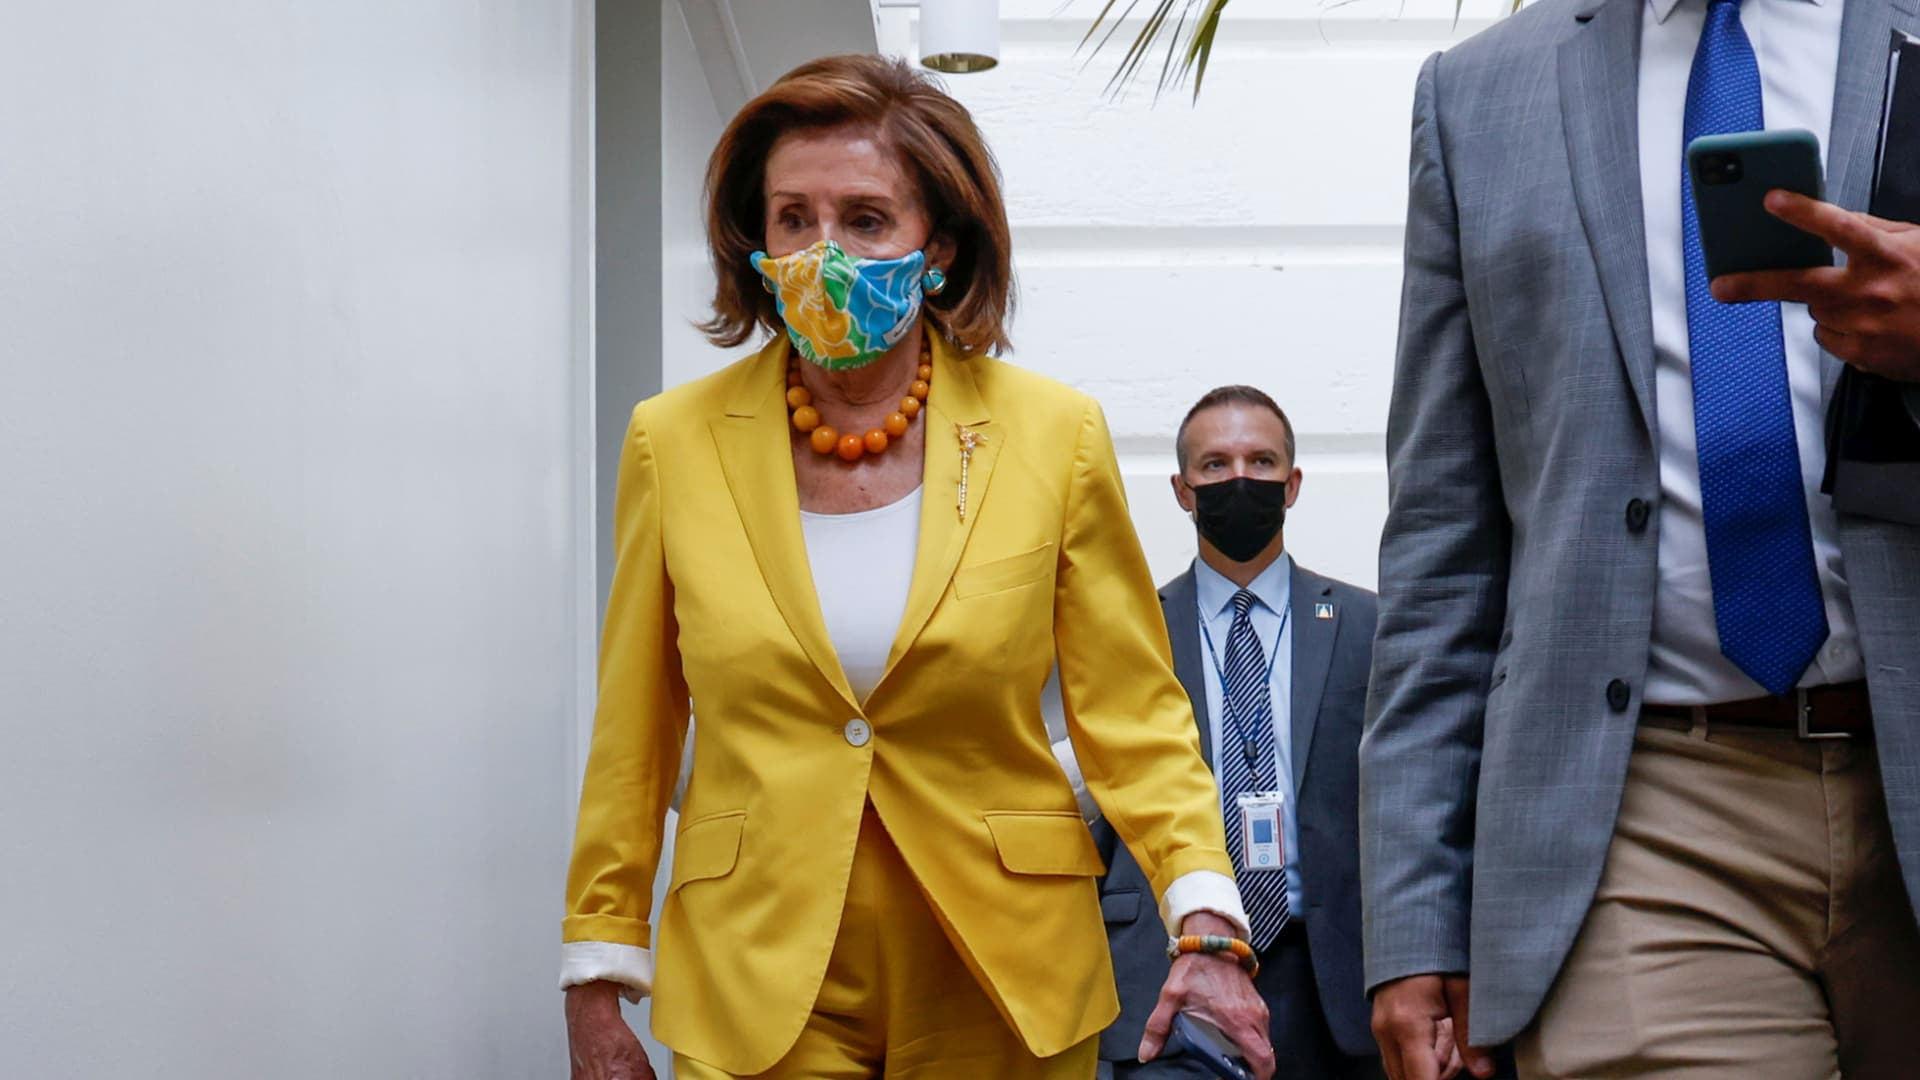 U.S. House Speaker Nancy Pelosi (D-CA) arrives for a House Democratic caucus meeting amidst ongoing negotiations over budget and infrastructure legislation at the U.S. Capitol in Washington, U.S. August 24, 2021.